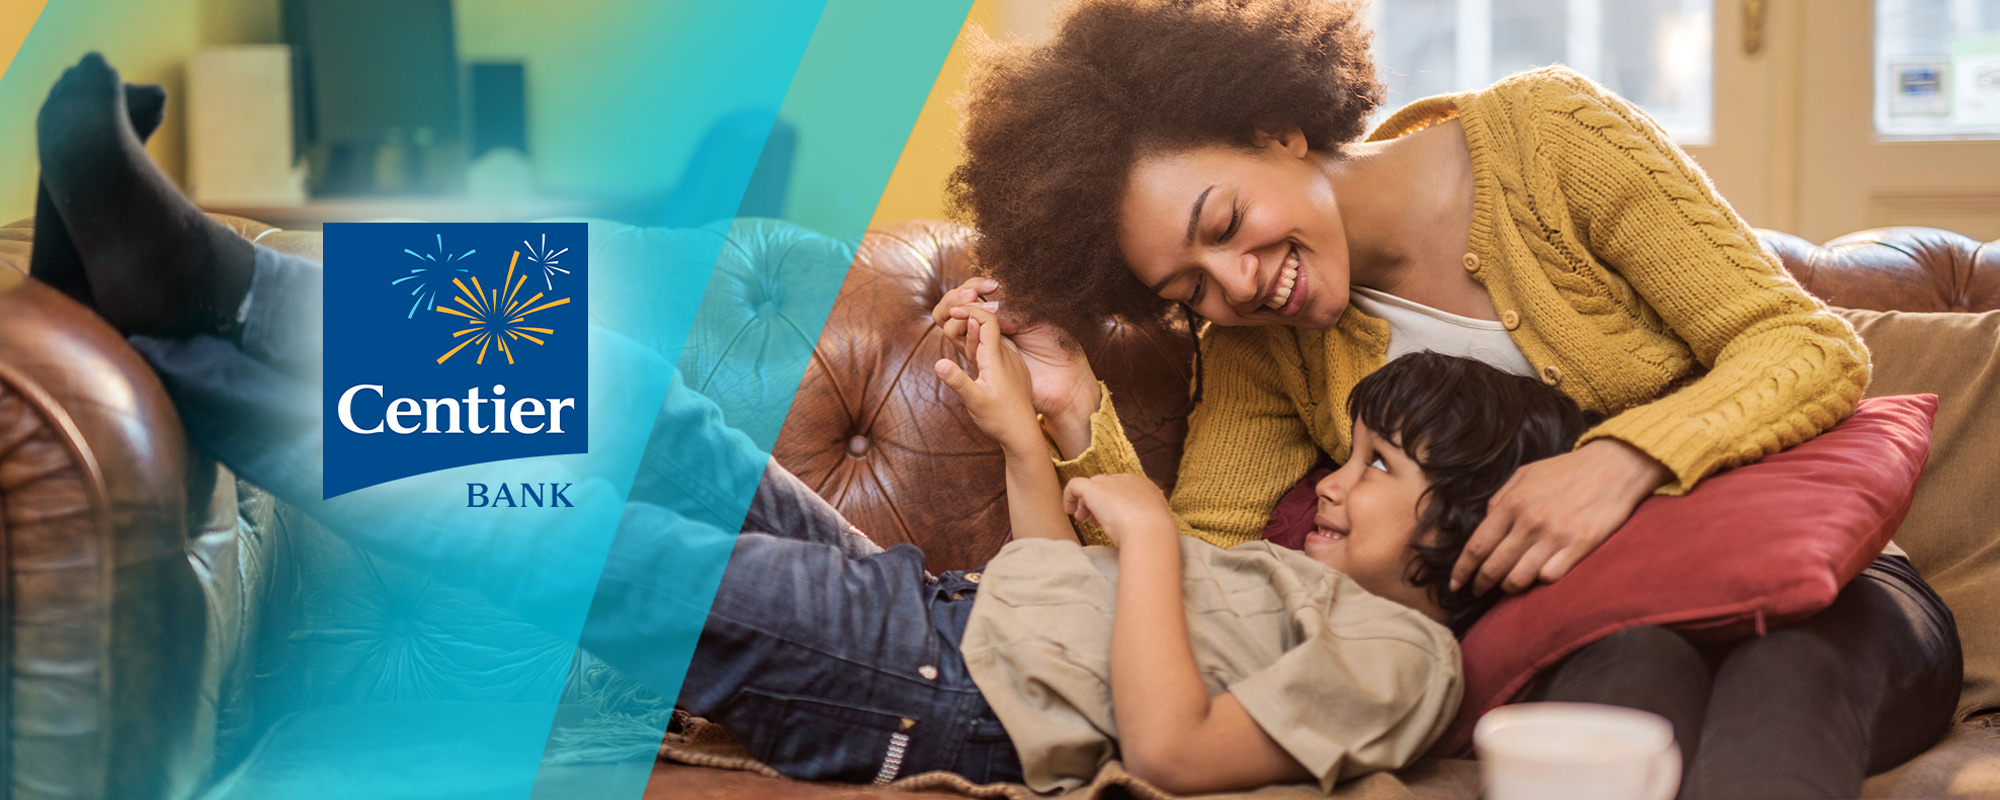 Centier Bank lifestyle ad with mother and child on couch